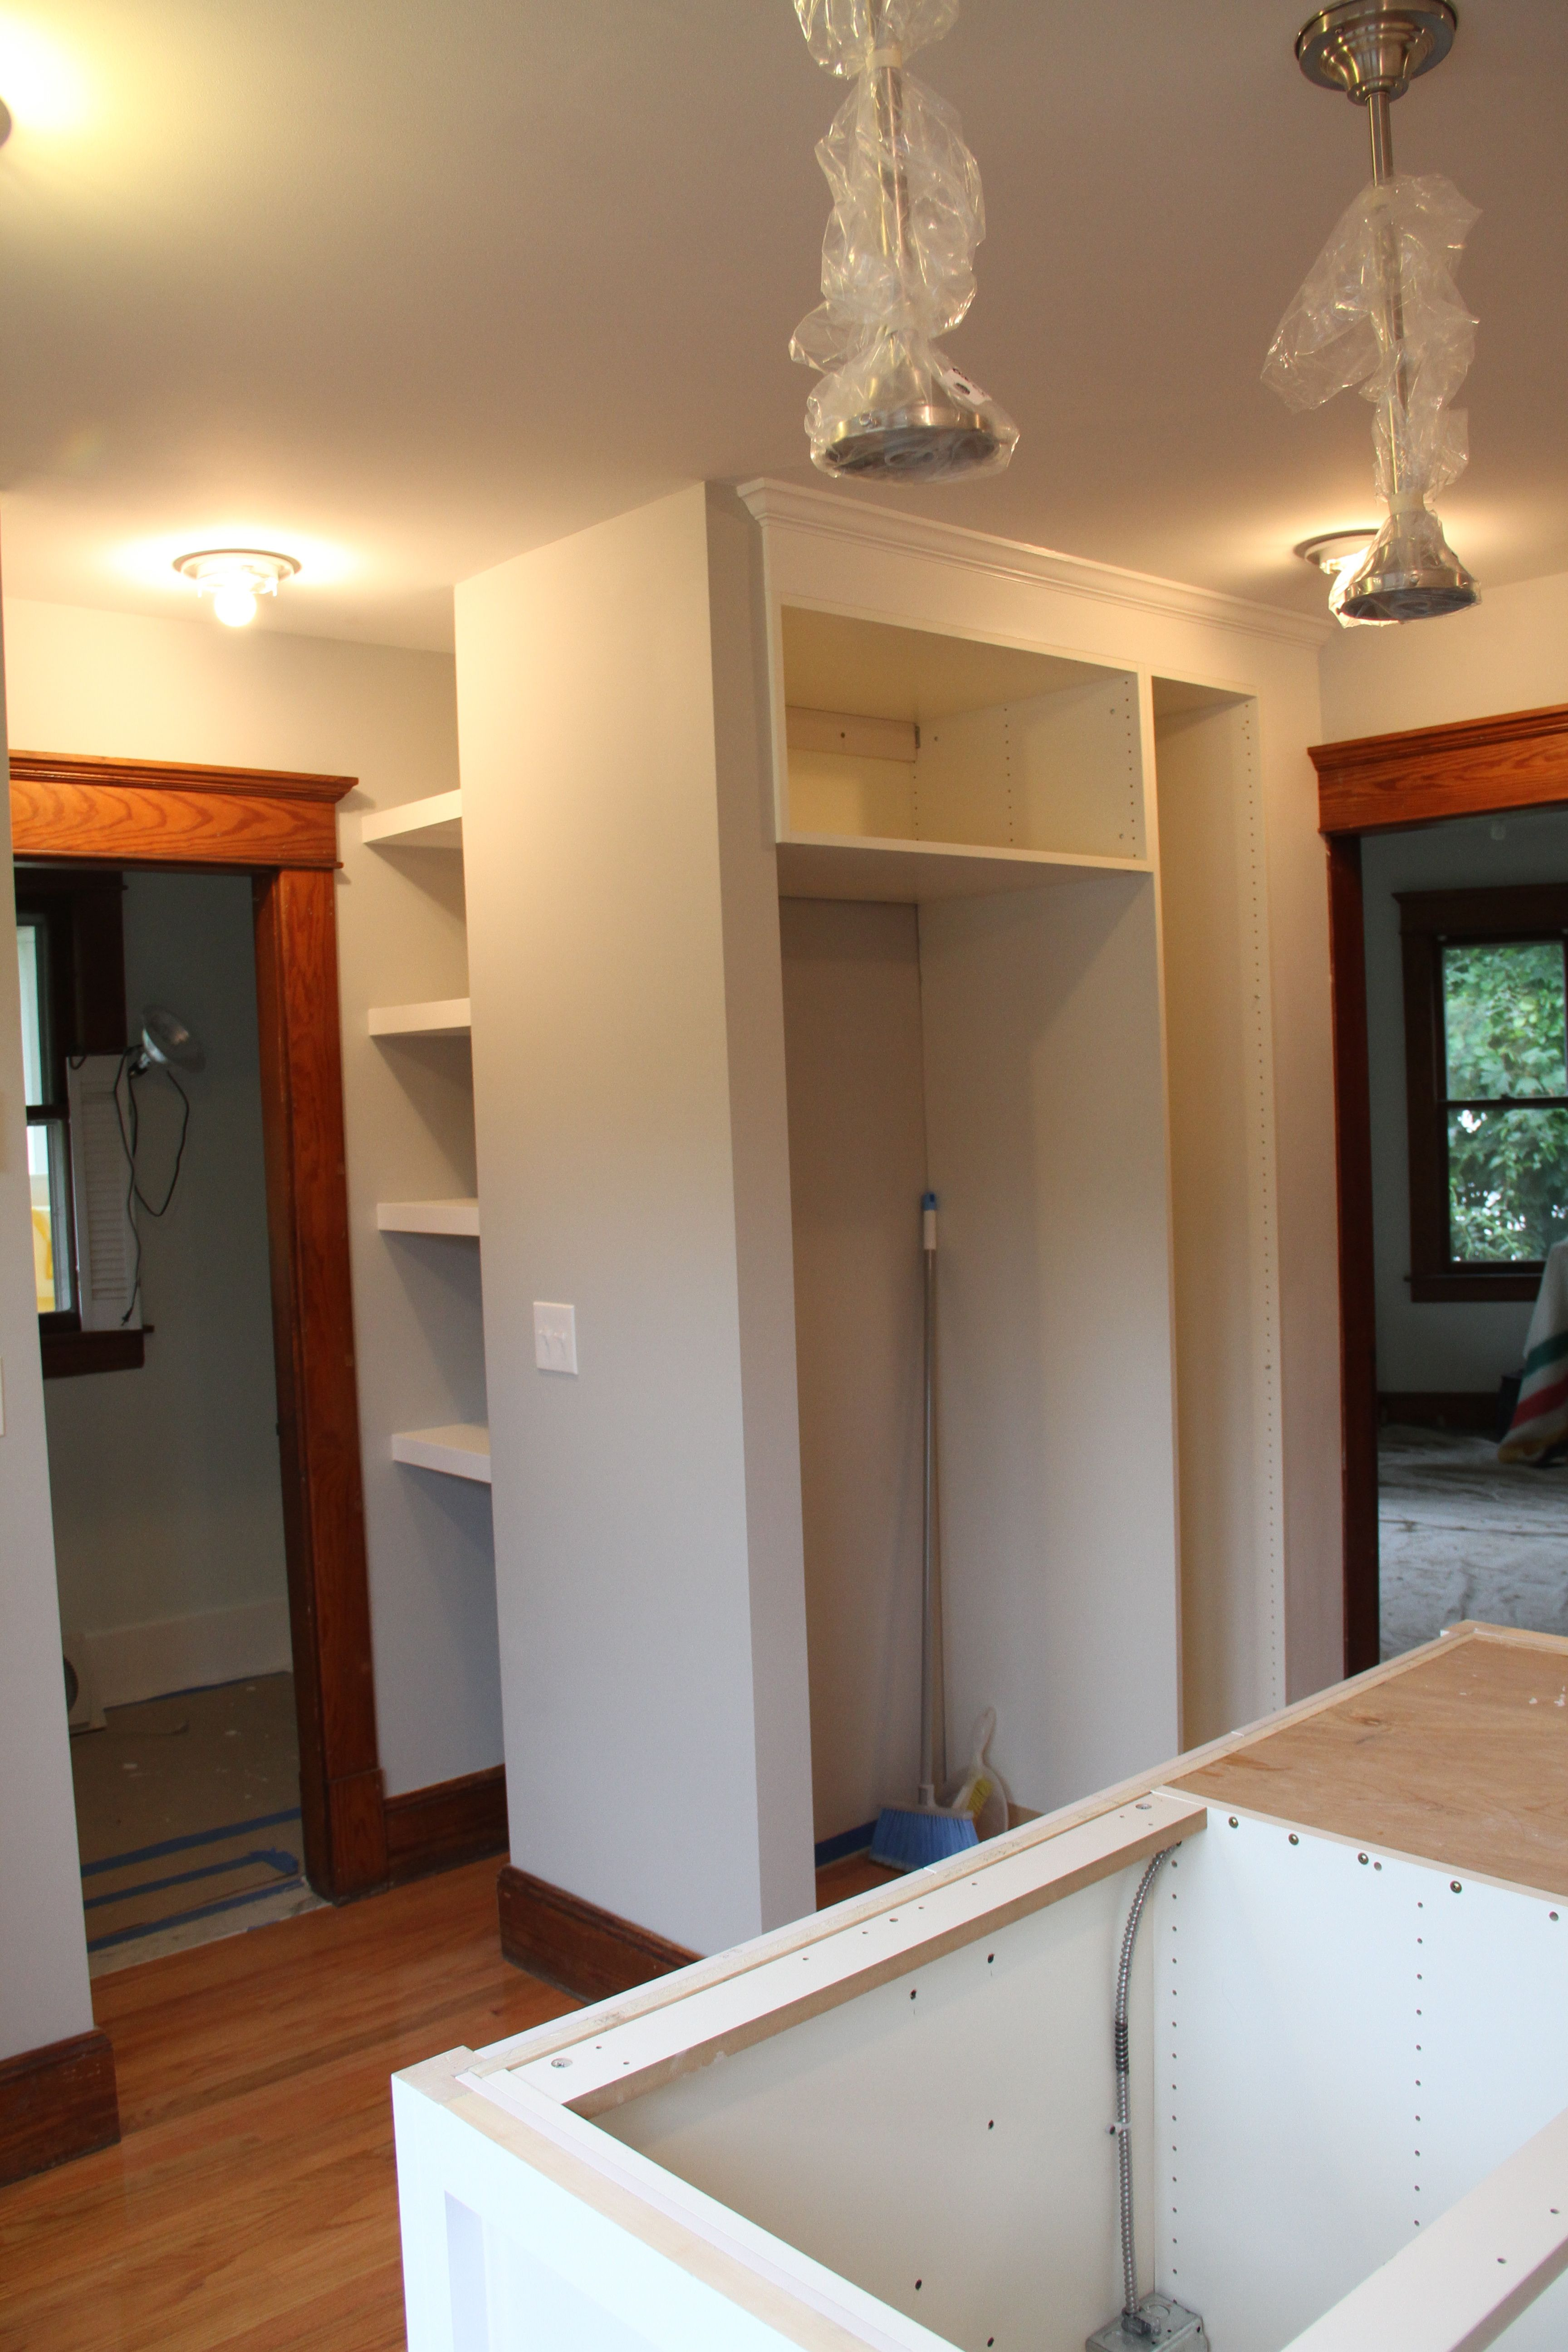 The pantry/fridge area awaiting plumbing (water supply) and the fridge which is already being used.